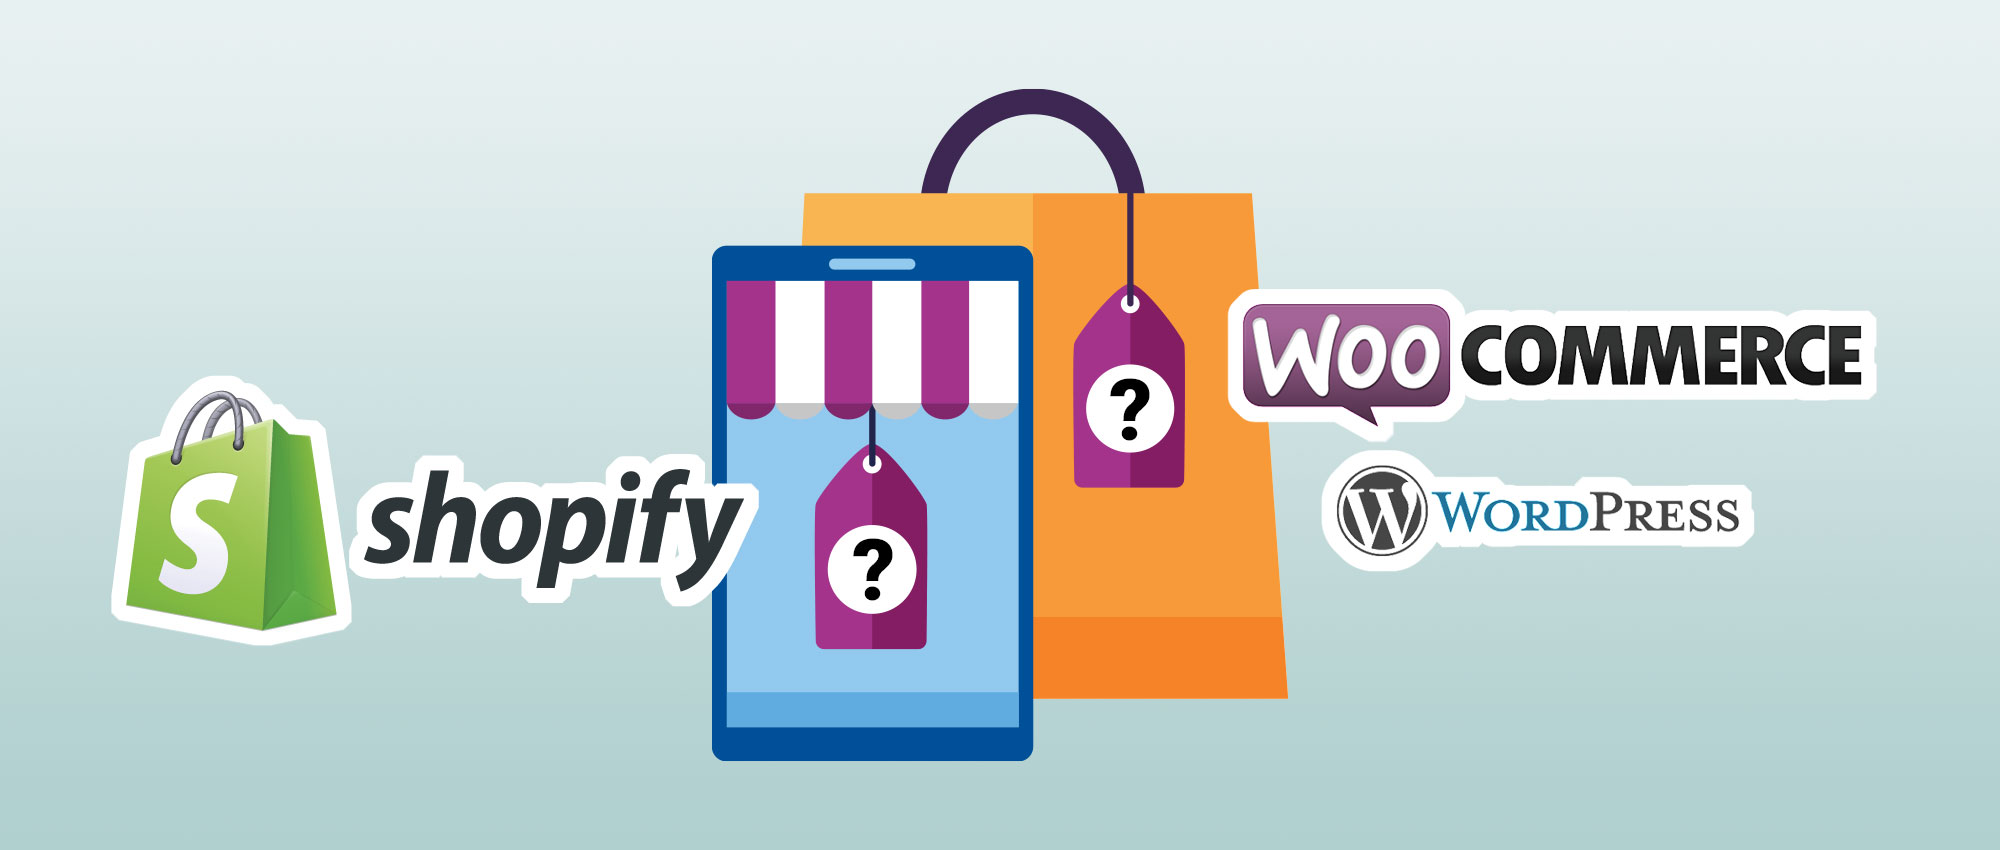 What are the differences between WordPress & Shopify eCommerce Websites?